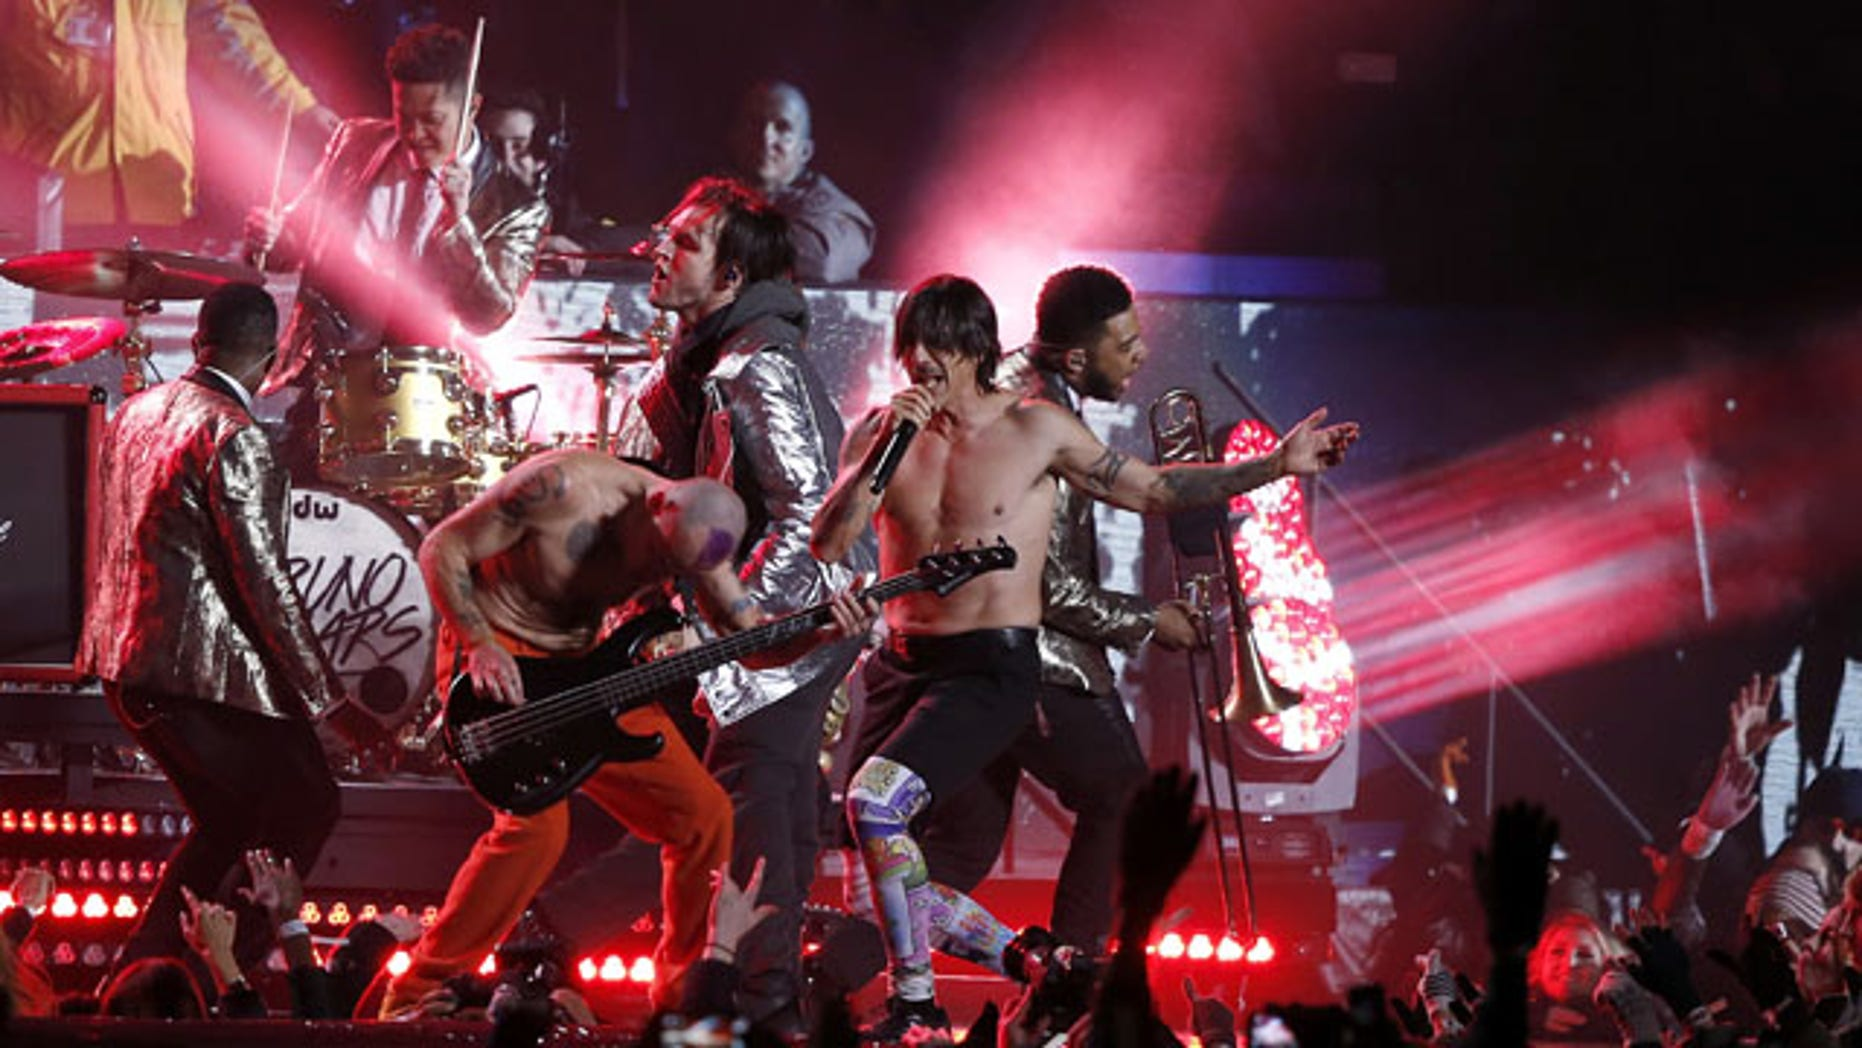 FILE - In this Sunday, Feb. 2, 2014 file photo, The Red Hot Chili Peppers perform during the halftime show of Super Bowl XLVIII between the Seattle Seahawks and the Denver Broncos, in East Rutherford, N.J. (AP)